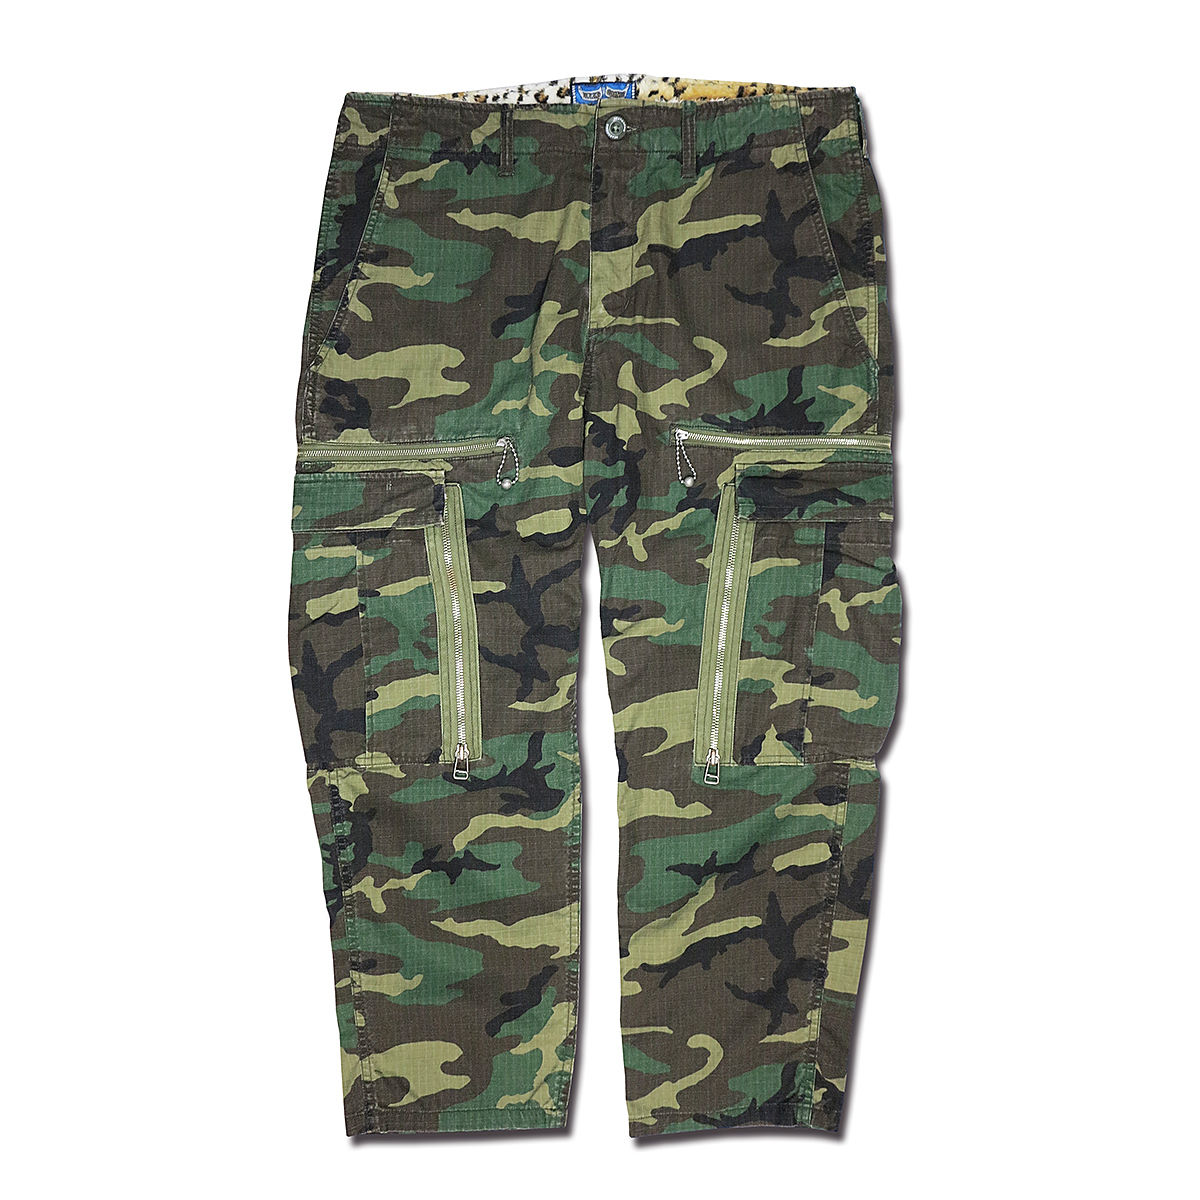 WOODLAND CAMOUFLAGE MILITARY ZIP PANTS